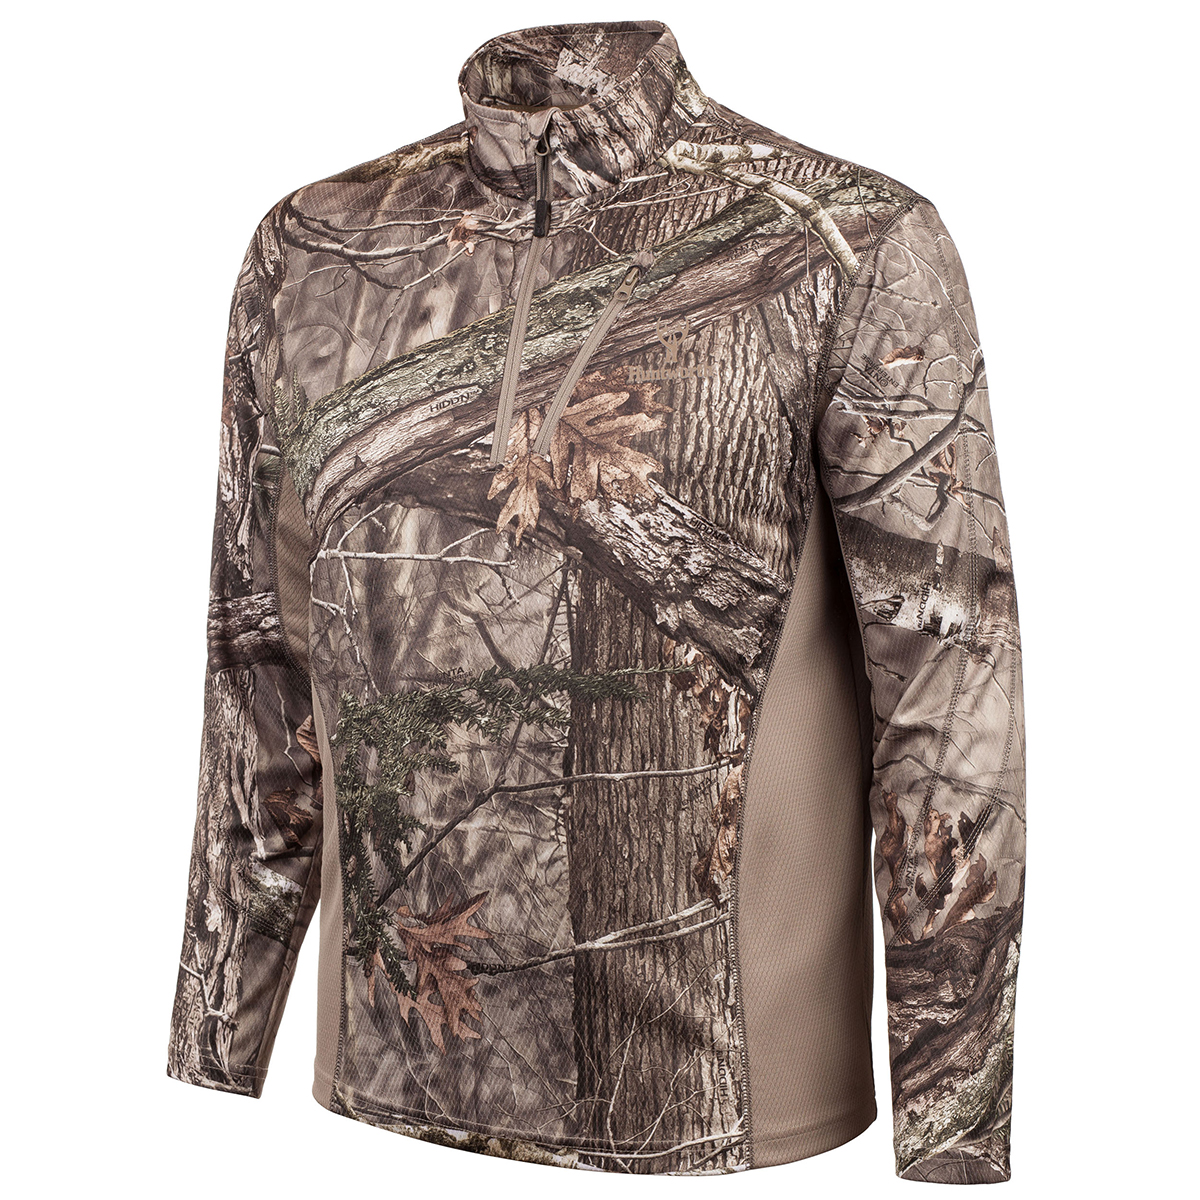 Huntworth Men's Bird's Eye Mesh Quarter-Zip Pullover, Hidd'n Camo